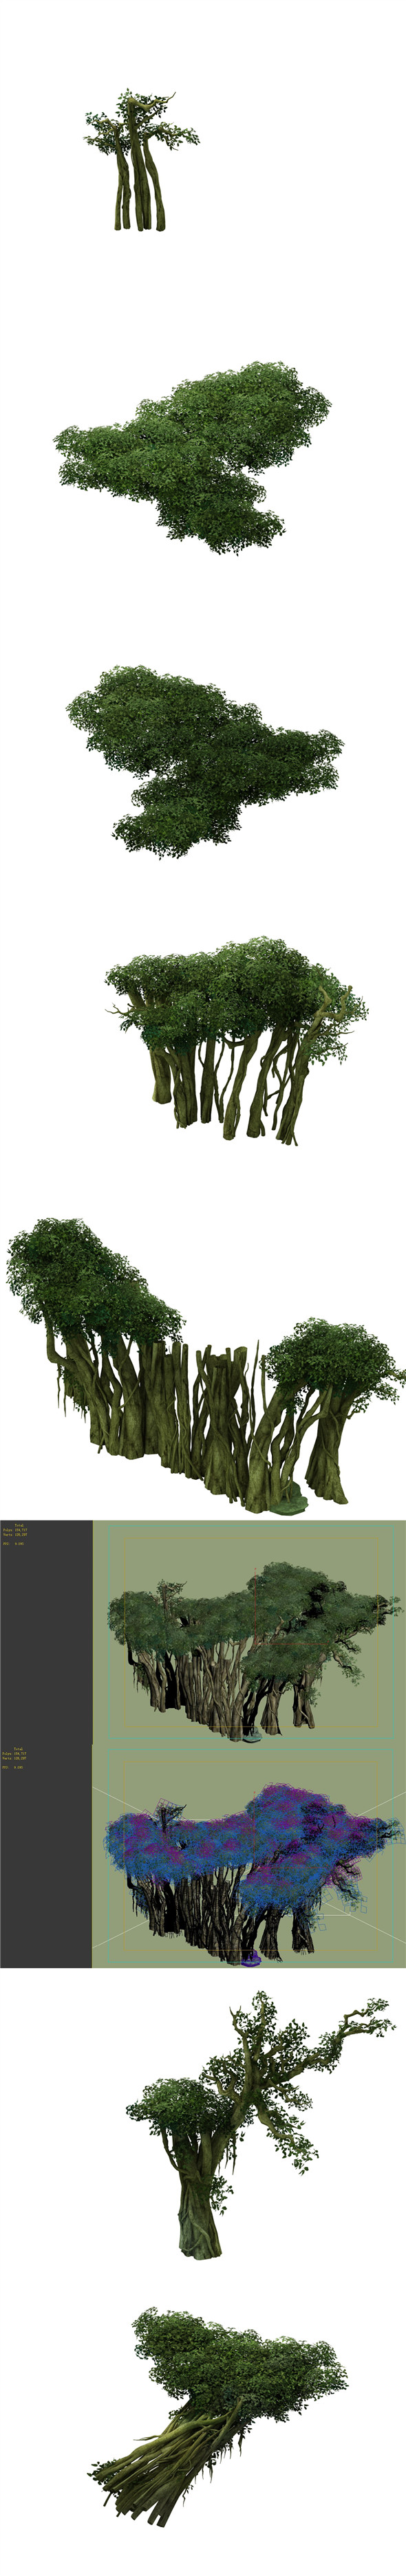 Game Model - Forest - Tree 14 - 3DOcean Item for Sale